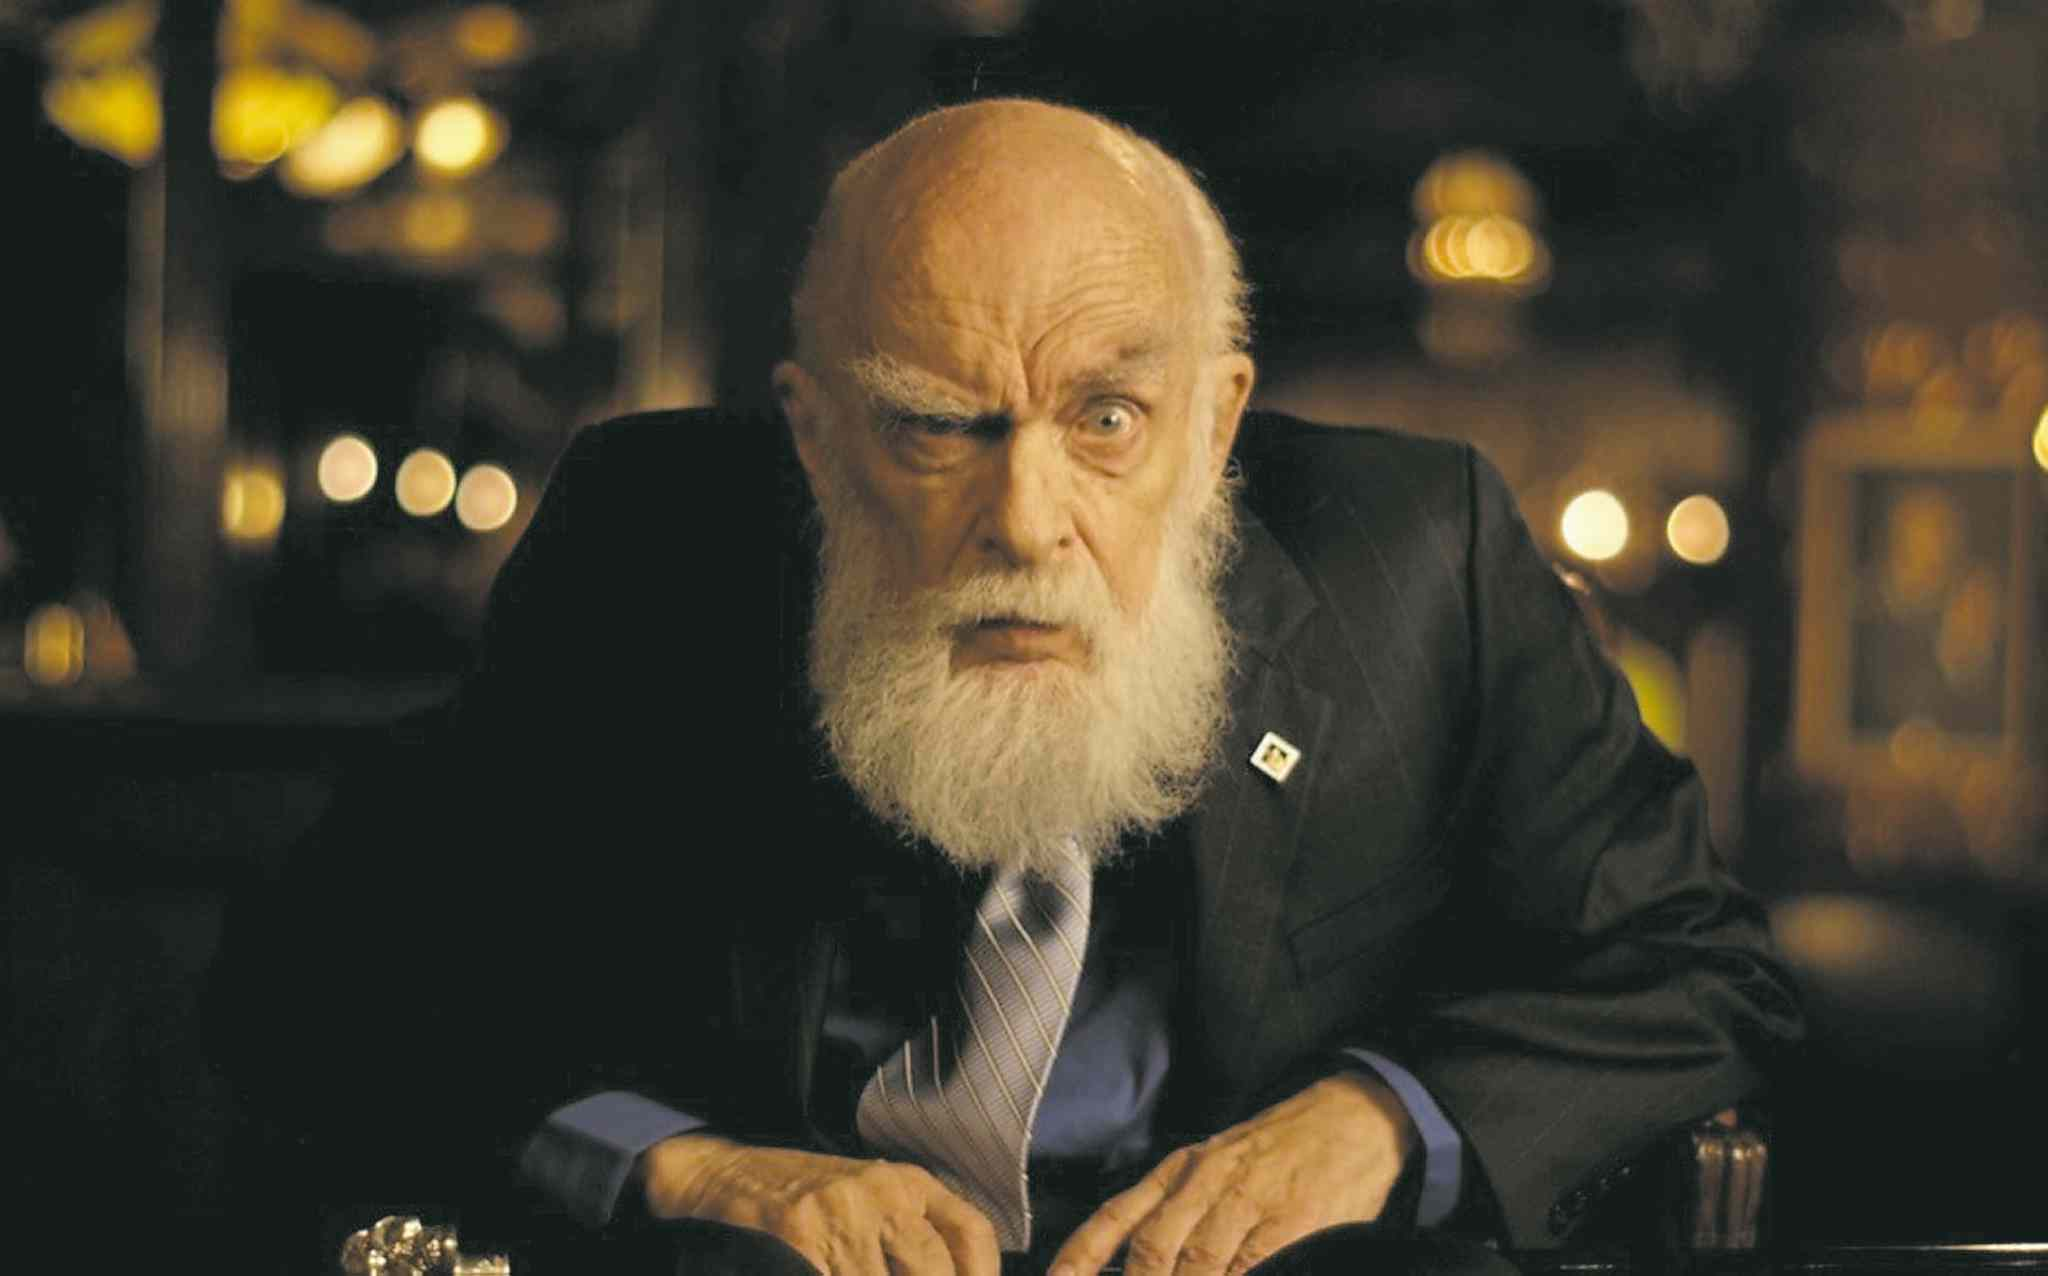 Toronto-born magician/escape artist James Randi took on  a sideline  of debunking psychics and charlatans.